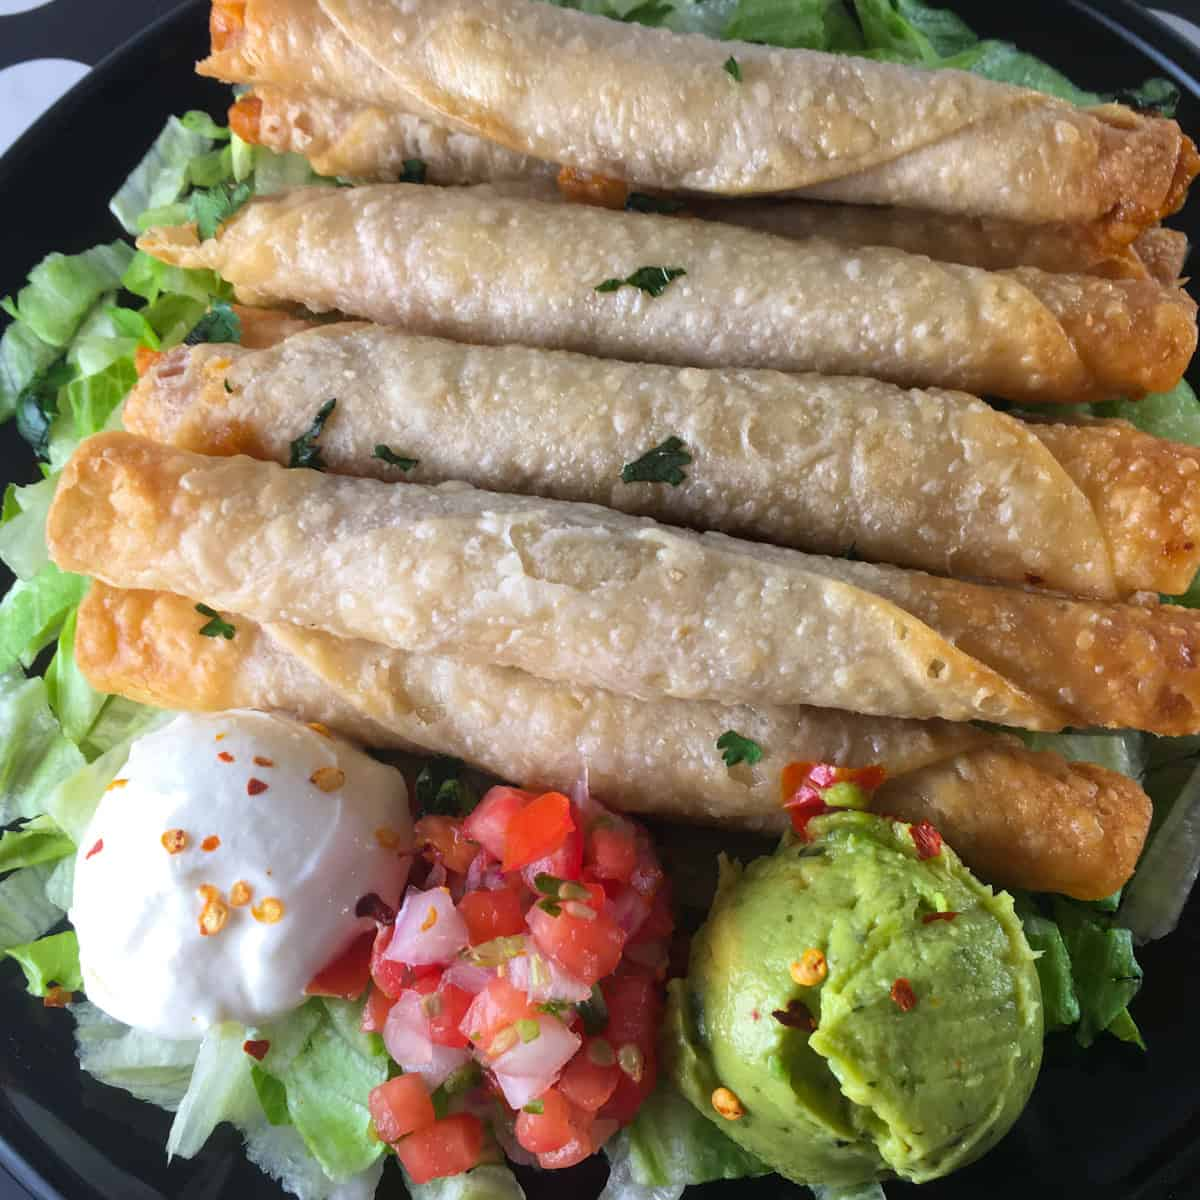 taquitos from the store